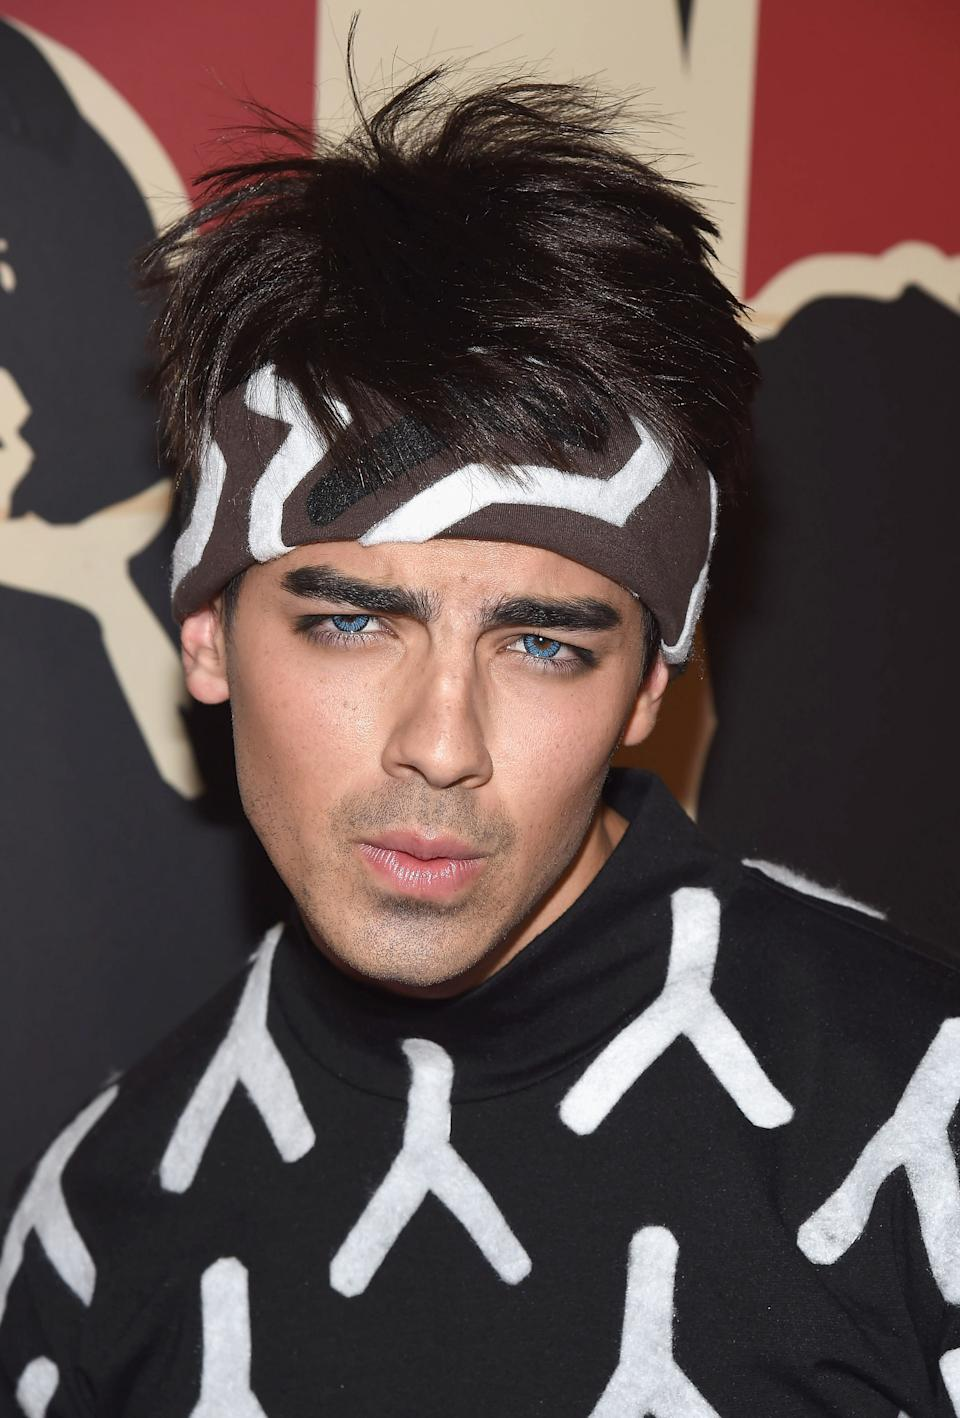 """<strong>Joe Jonas as Derek Zoolander</strong><br><br>At Heidi Klum's 2014 Halloween party, Joe Jonas arrived as Derek Zoolander. And yes — he wore colored contacts. How else is a guy supposed to show off his Blue Steel?<span class=""""copyright""""><a href=""""http://www.gettyimages.com/search/photographer?family=editorial&photographer=Gary+Gershoff"""" rel=""""nofollow noopener"""" target=""""_blank"""" data-ylk=""""slk:Gary Gershoff"""" class=""""link rapid-noclick-resp"""">Gary Gershoff</a> / Contributor</span>"""